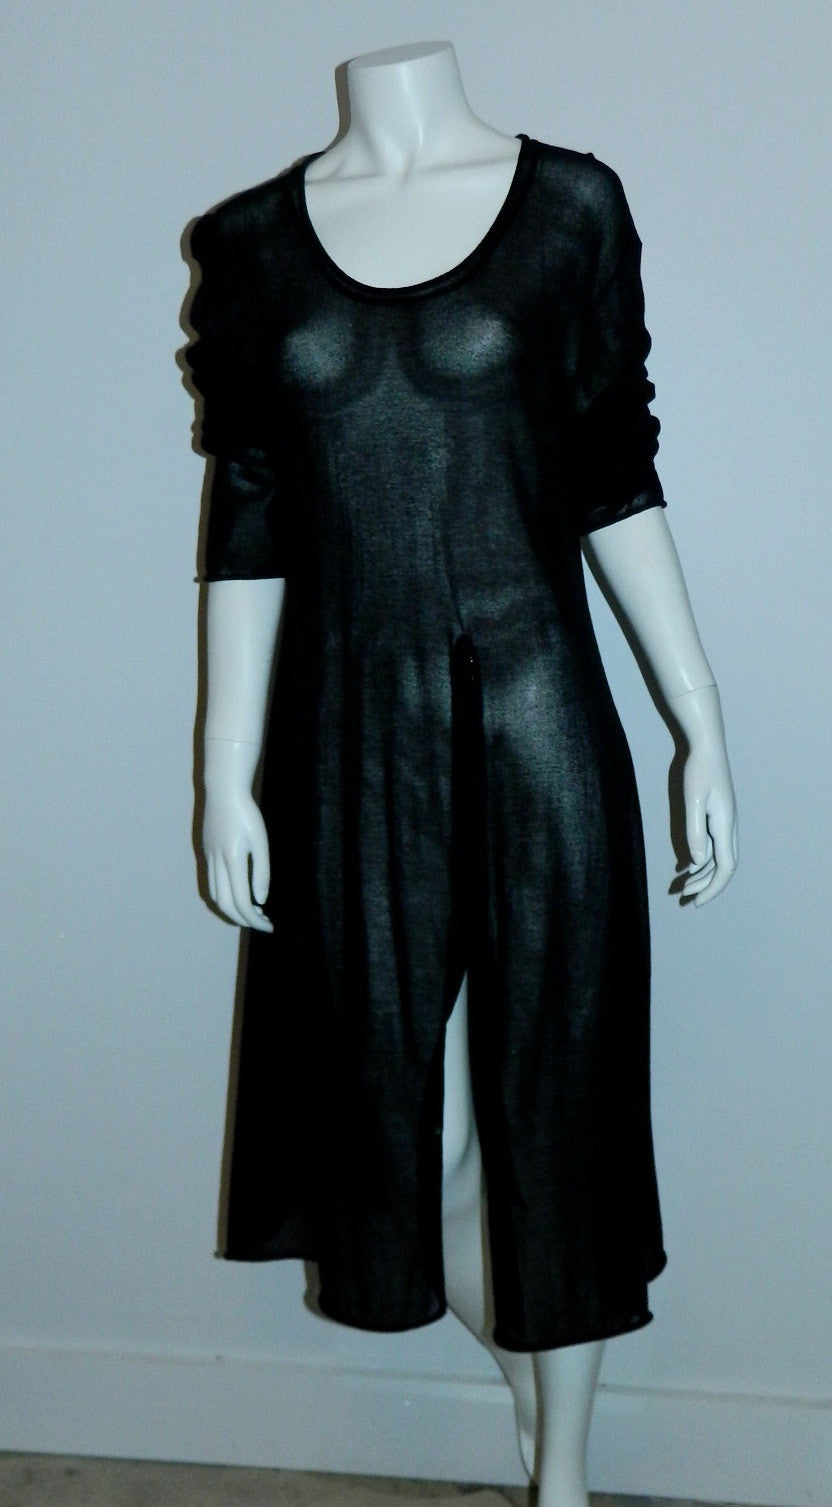 sheer weave RUNDHOLZ DIP abstract knit sweater dress OS